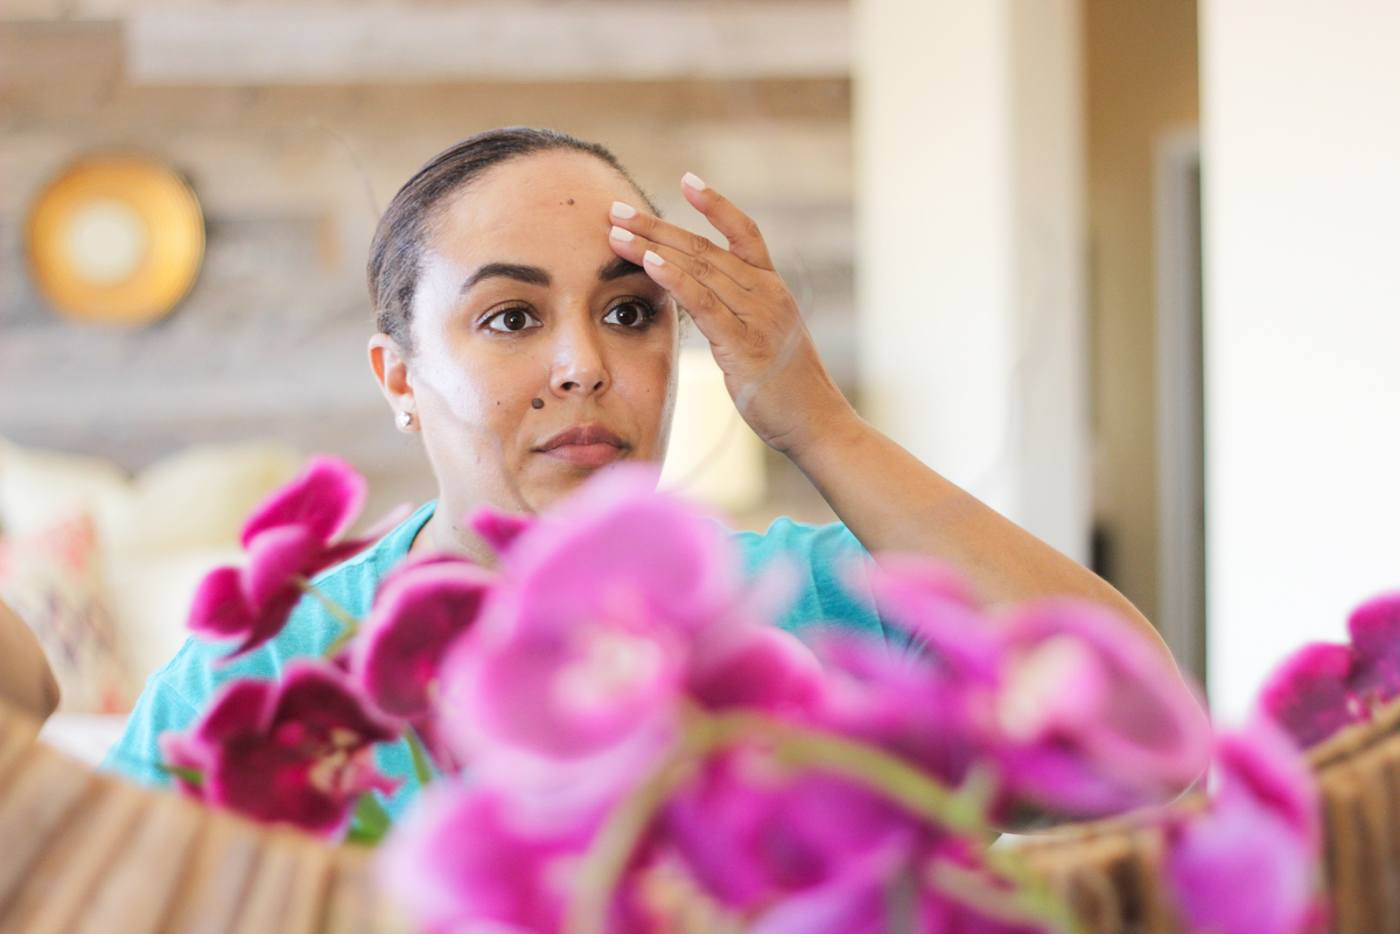 Tired of seeing fine lines and wrinkles across your forehead? Read now, how to get rid of those pesky forehead wrinkles without any needles.